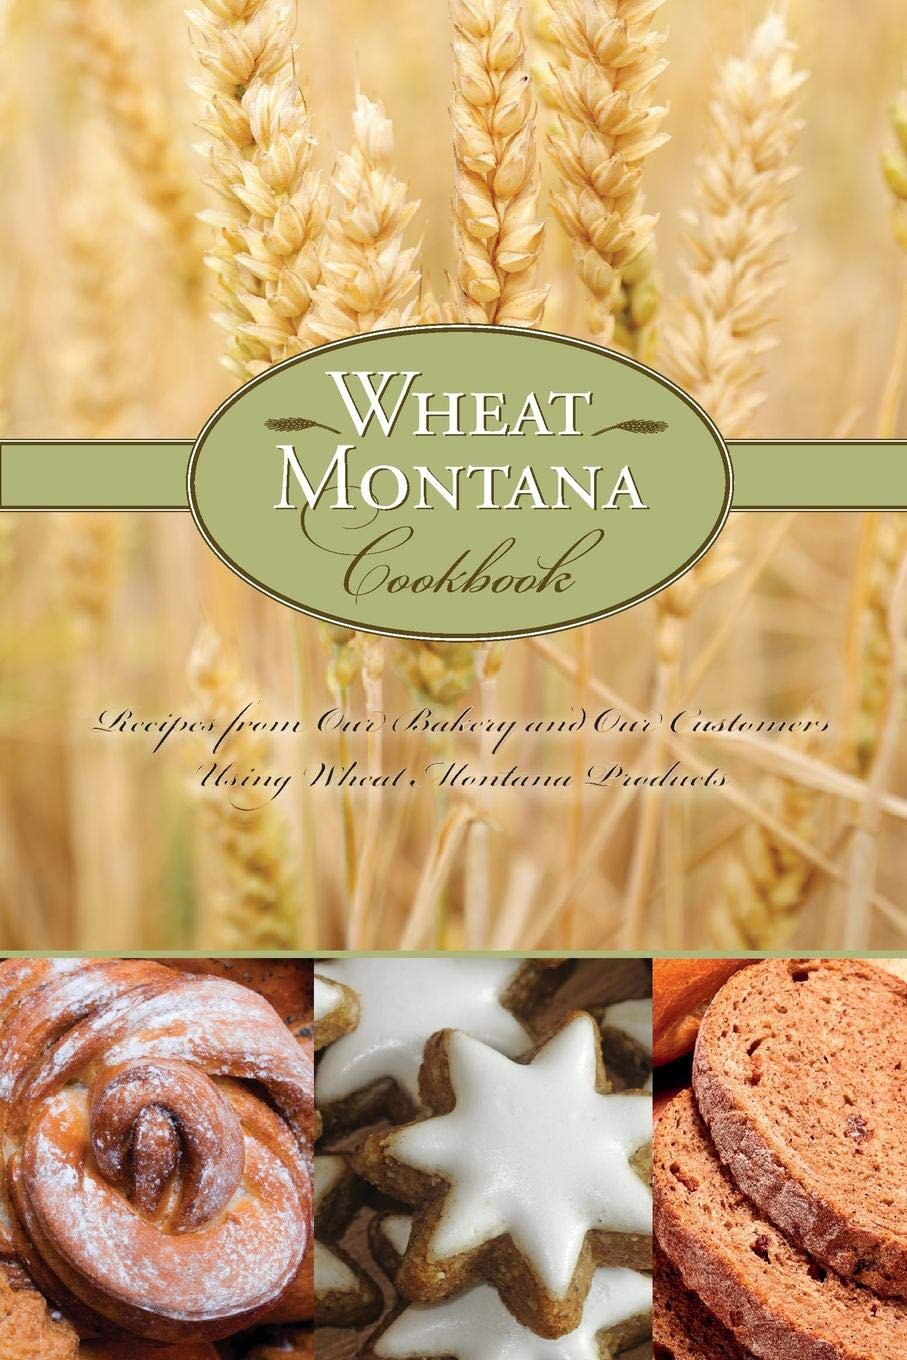 Wheat Montana Cookbook: Recipes From Our Bakery And Our